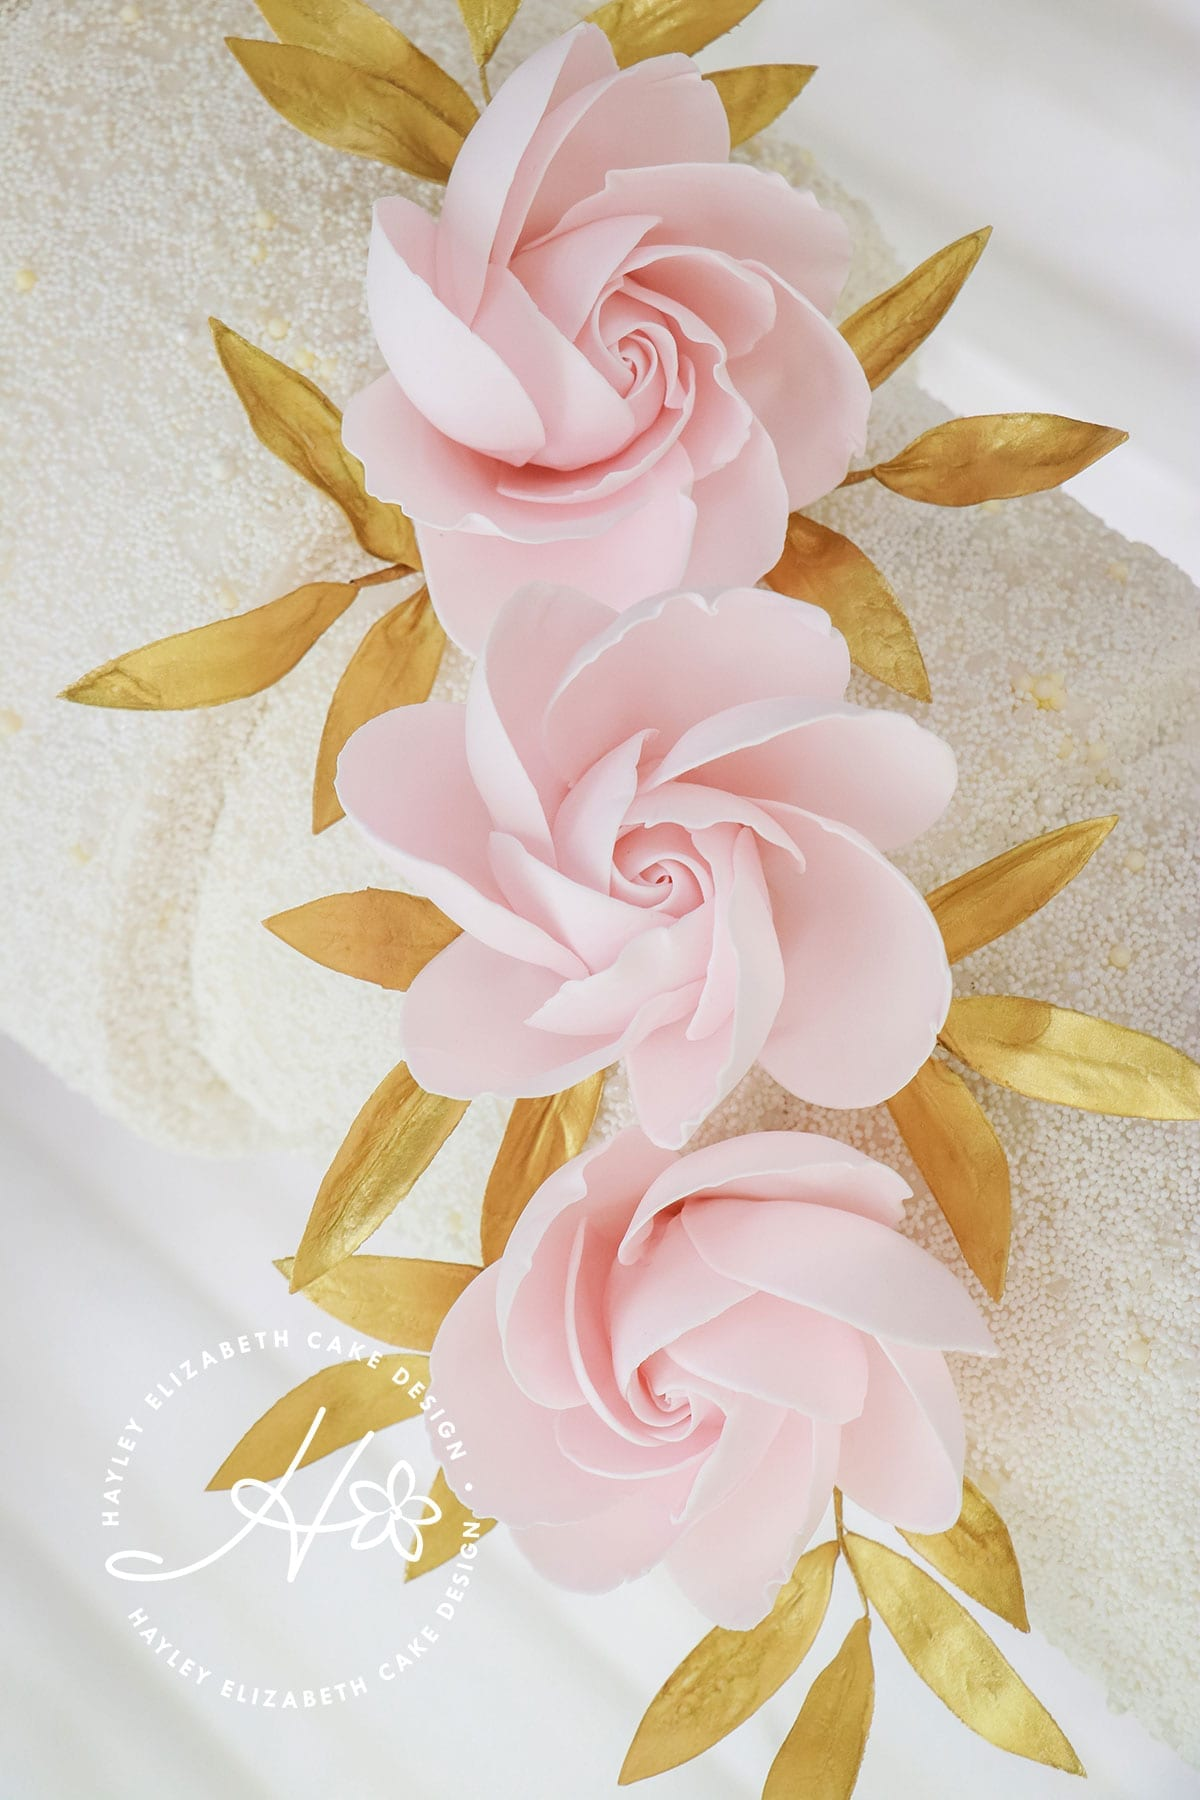 Textured wedding cake with contemporary roses and gold leaves. White, gold and pink wedding cake, elegant wedding cake, sugar flowers, Hampshire and Dorset cake design, wedding cake inspiration